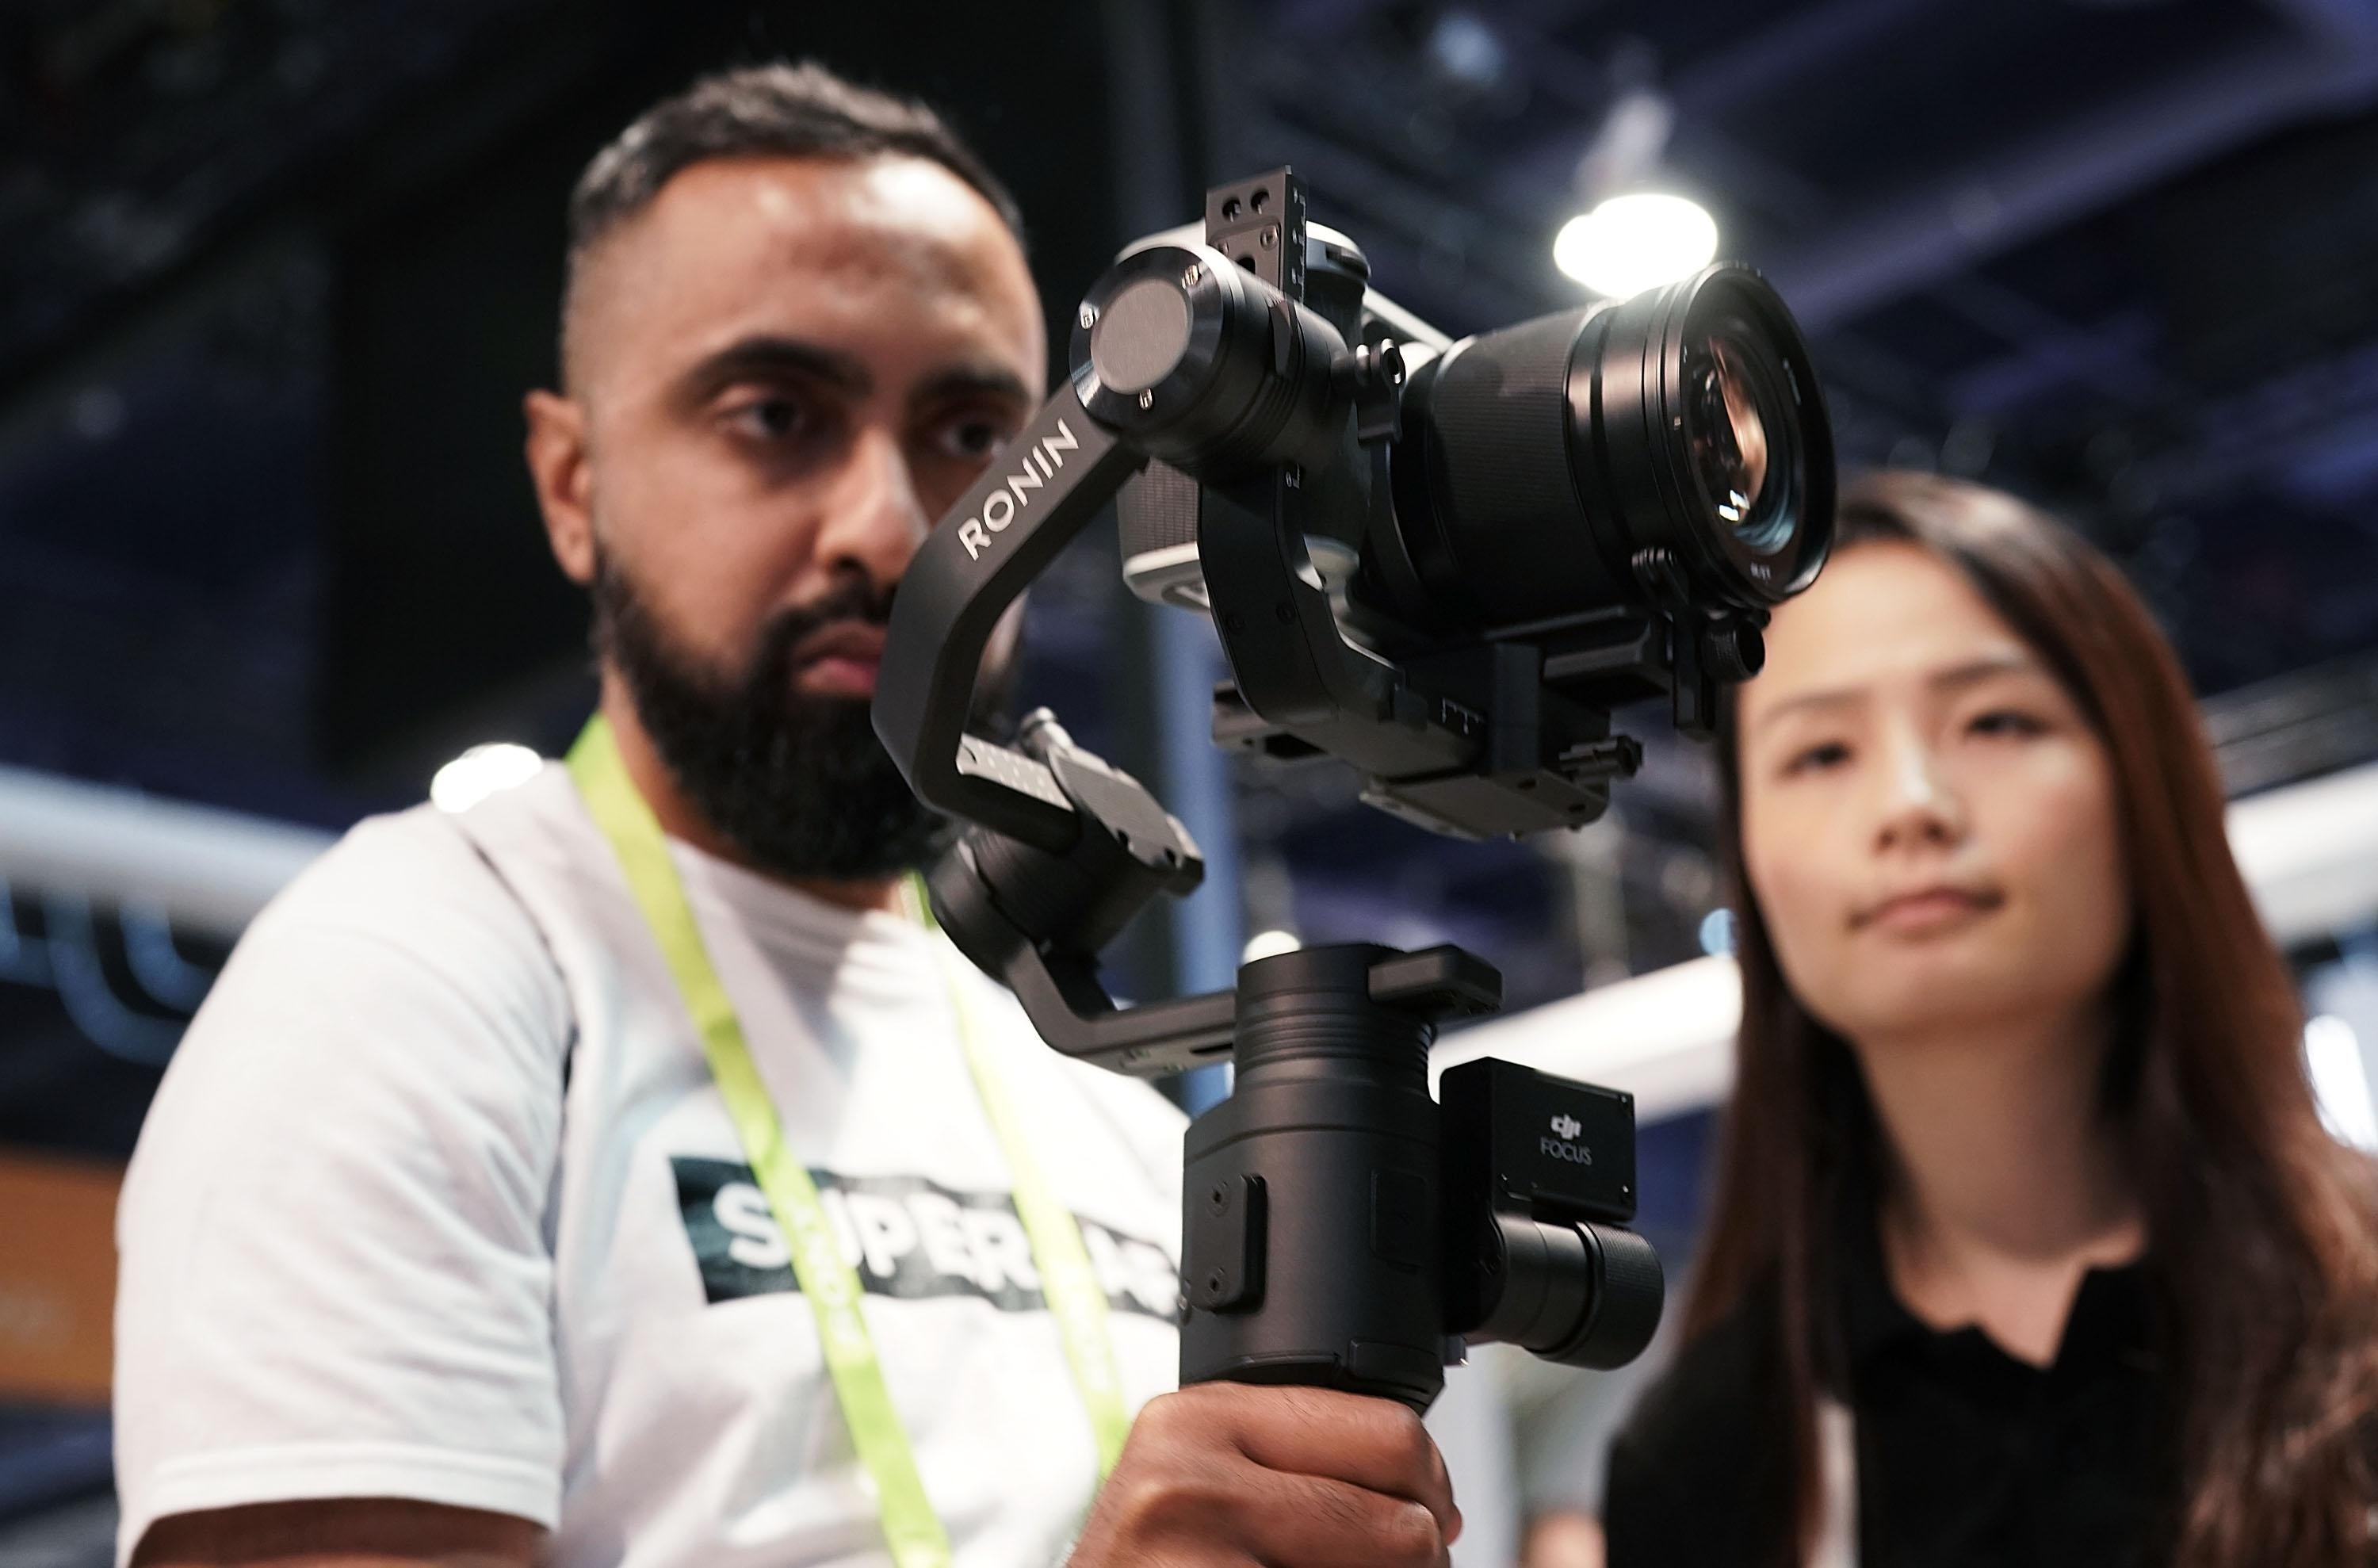 LAS VEGAS, NV - JANUARY 11:  An attendee tries the new DJI Ronin-S camera stabilizer for small DSLR during CES 2018 at the Las Vegas Convention Center on January 11, 2018 in Las Vegas, Nevada. CES, the world's largest annual consumer technology trade show, runs through January 12 and features about 3,900 exhibitors showing off their latest products and services to more than 170,000 attendees.  (Photo by Alex Wong/Getty Images)